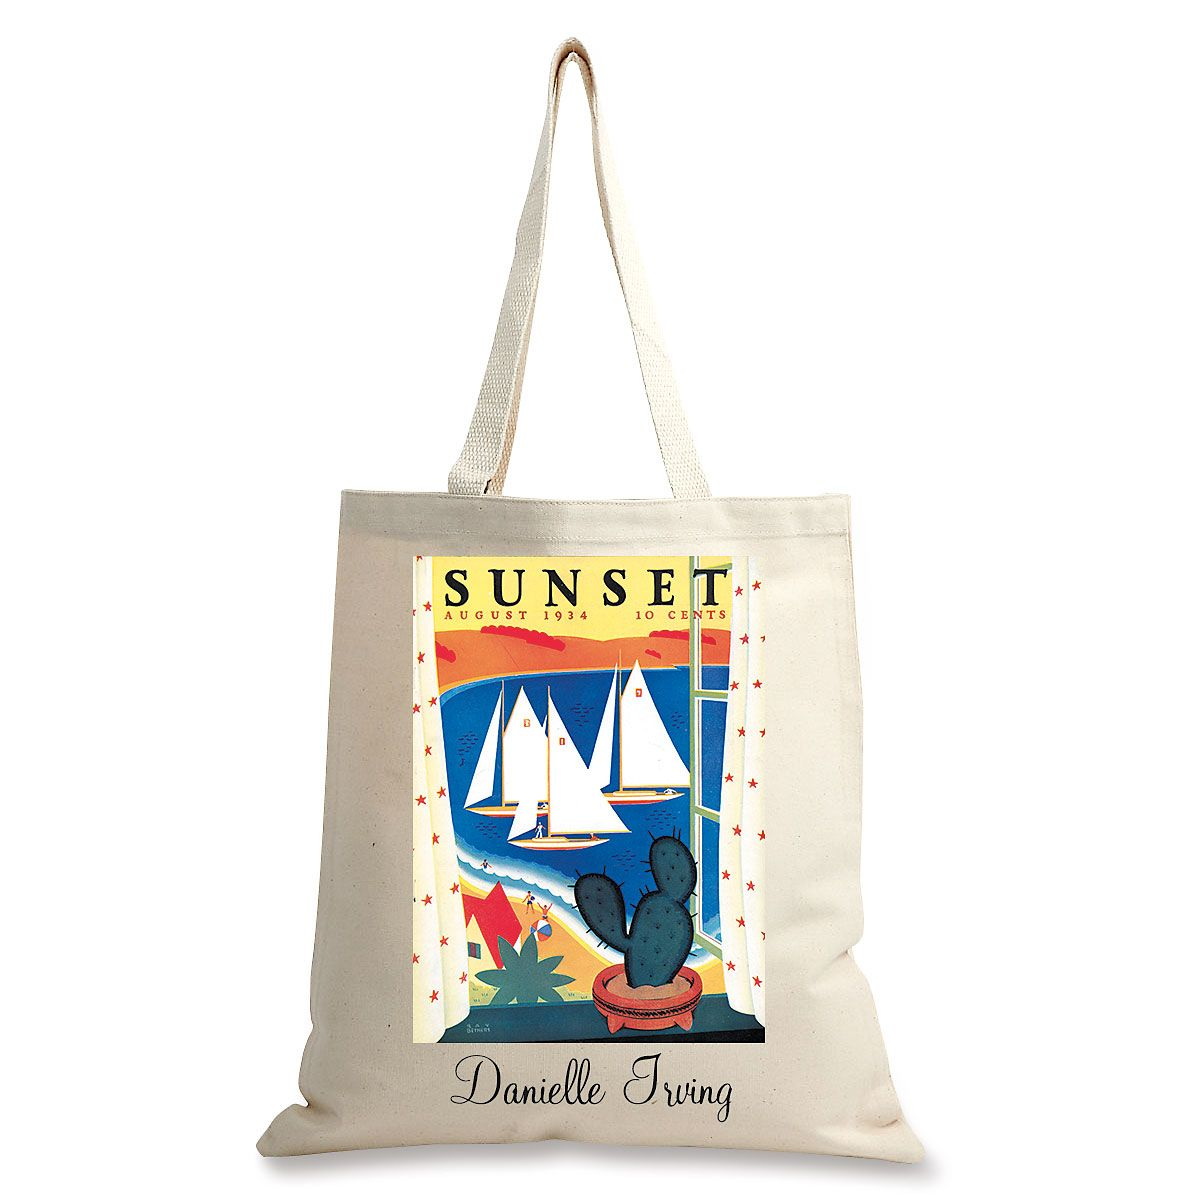 Succulent View Personalized Canvas Tote